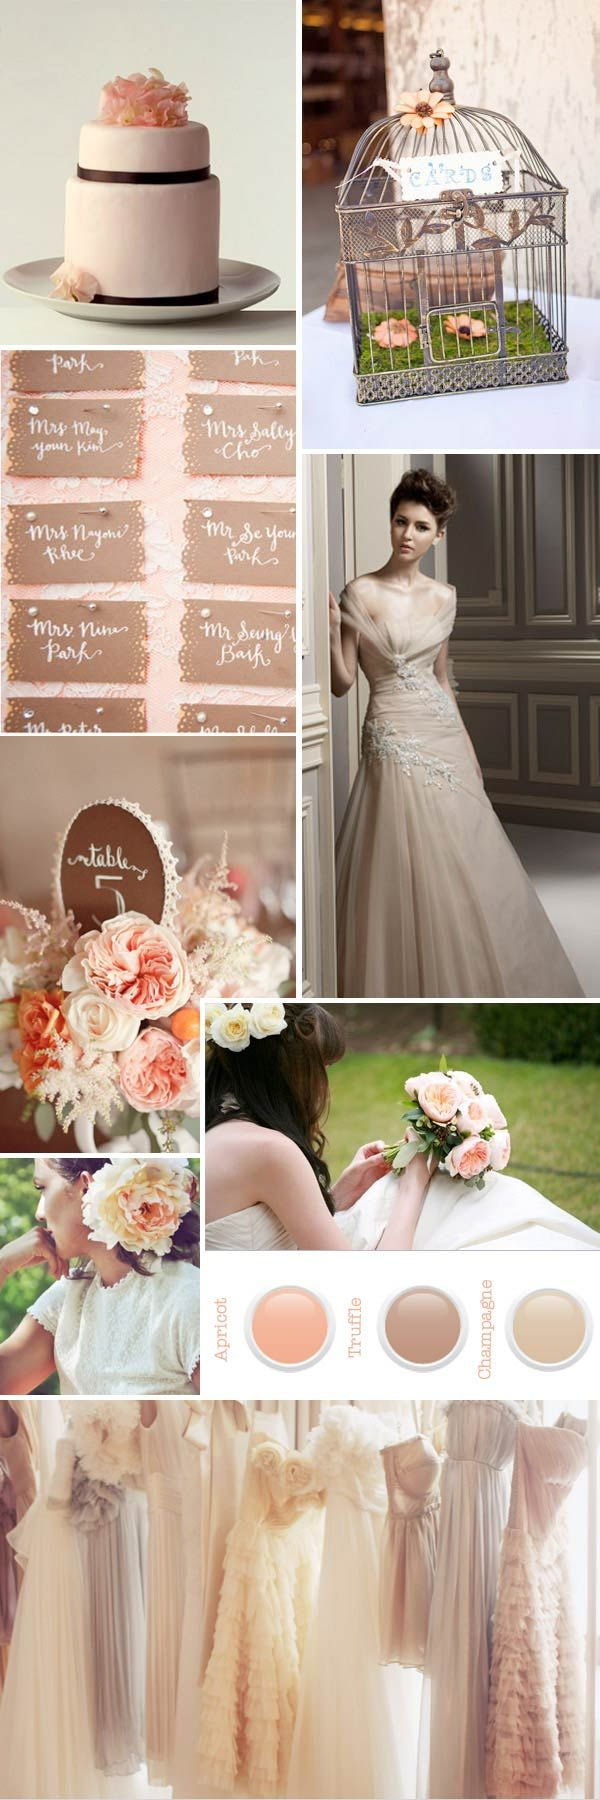 71 Best Images About Dusty Rose, Mauve, Peach, Cream, And